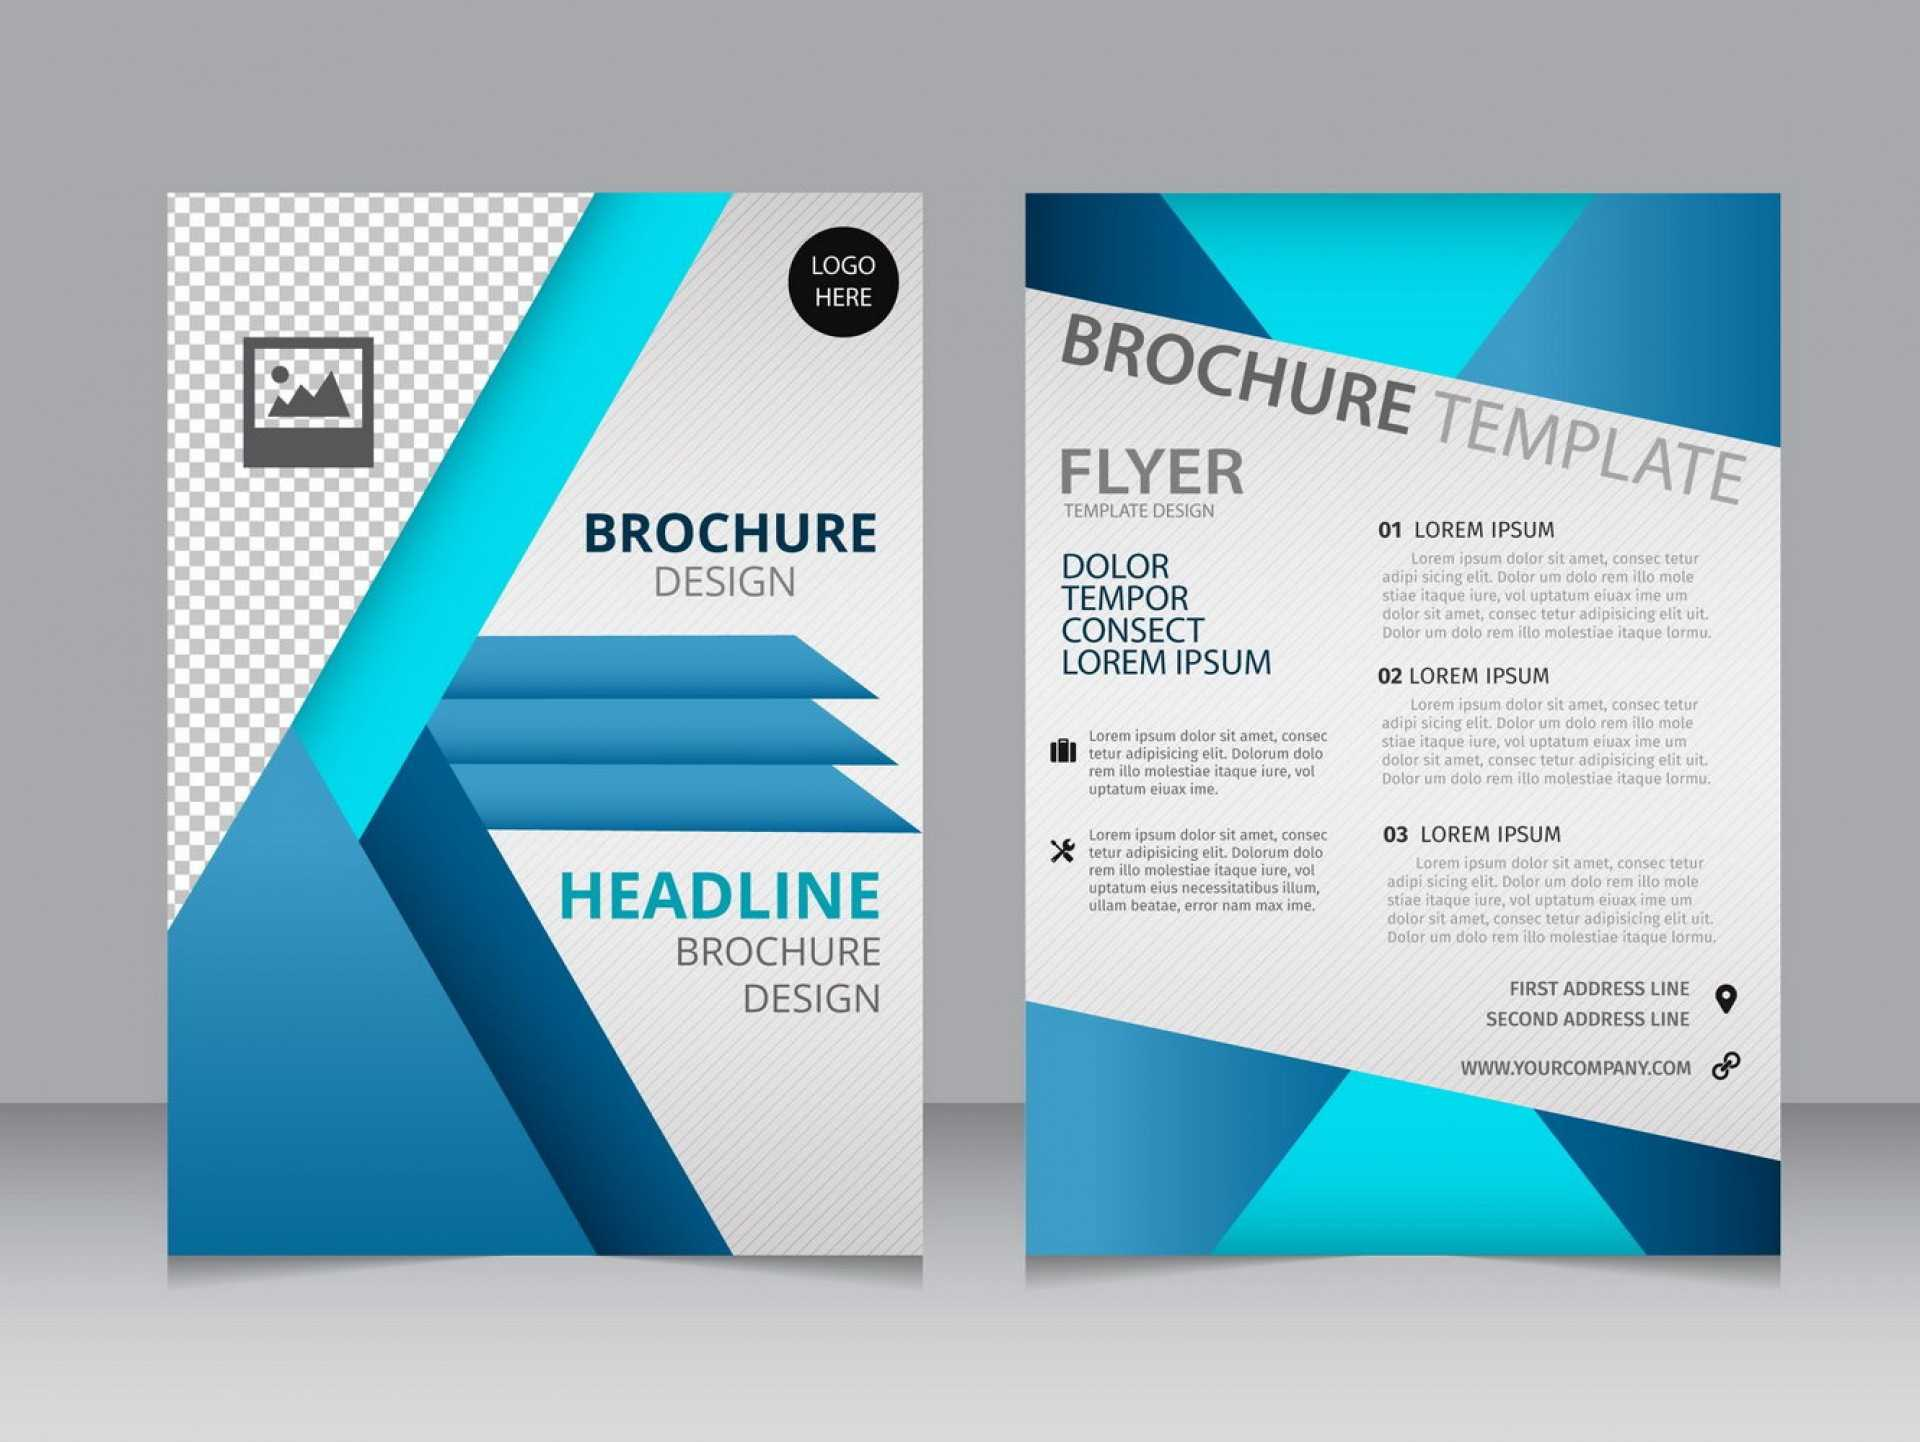 011 Template Ideas Leaflet Word Free Download Blank Brochure Within Brochure Template Illustrator Free Download